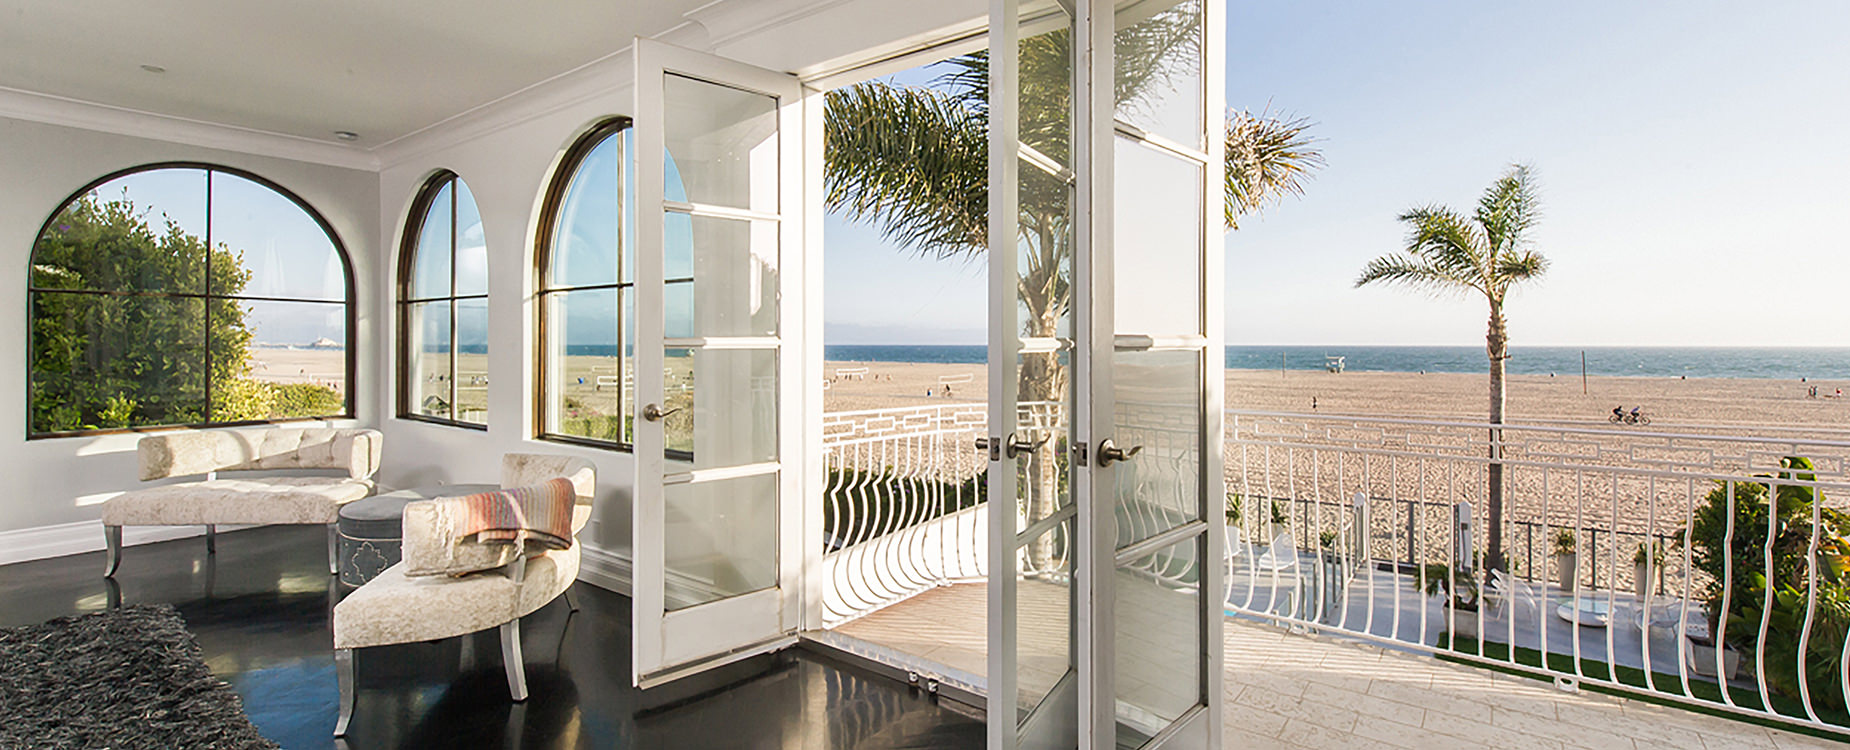 Welcome to passages santa monica luxury sober living for Passages malibu